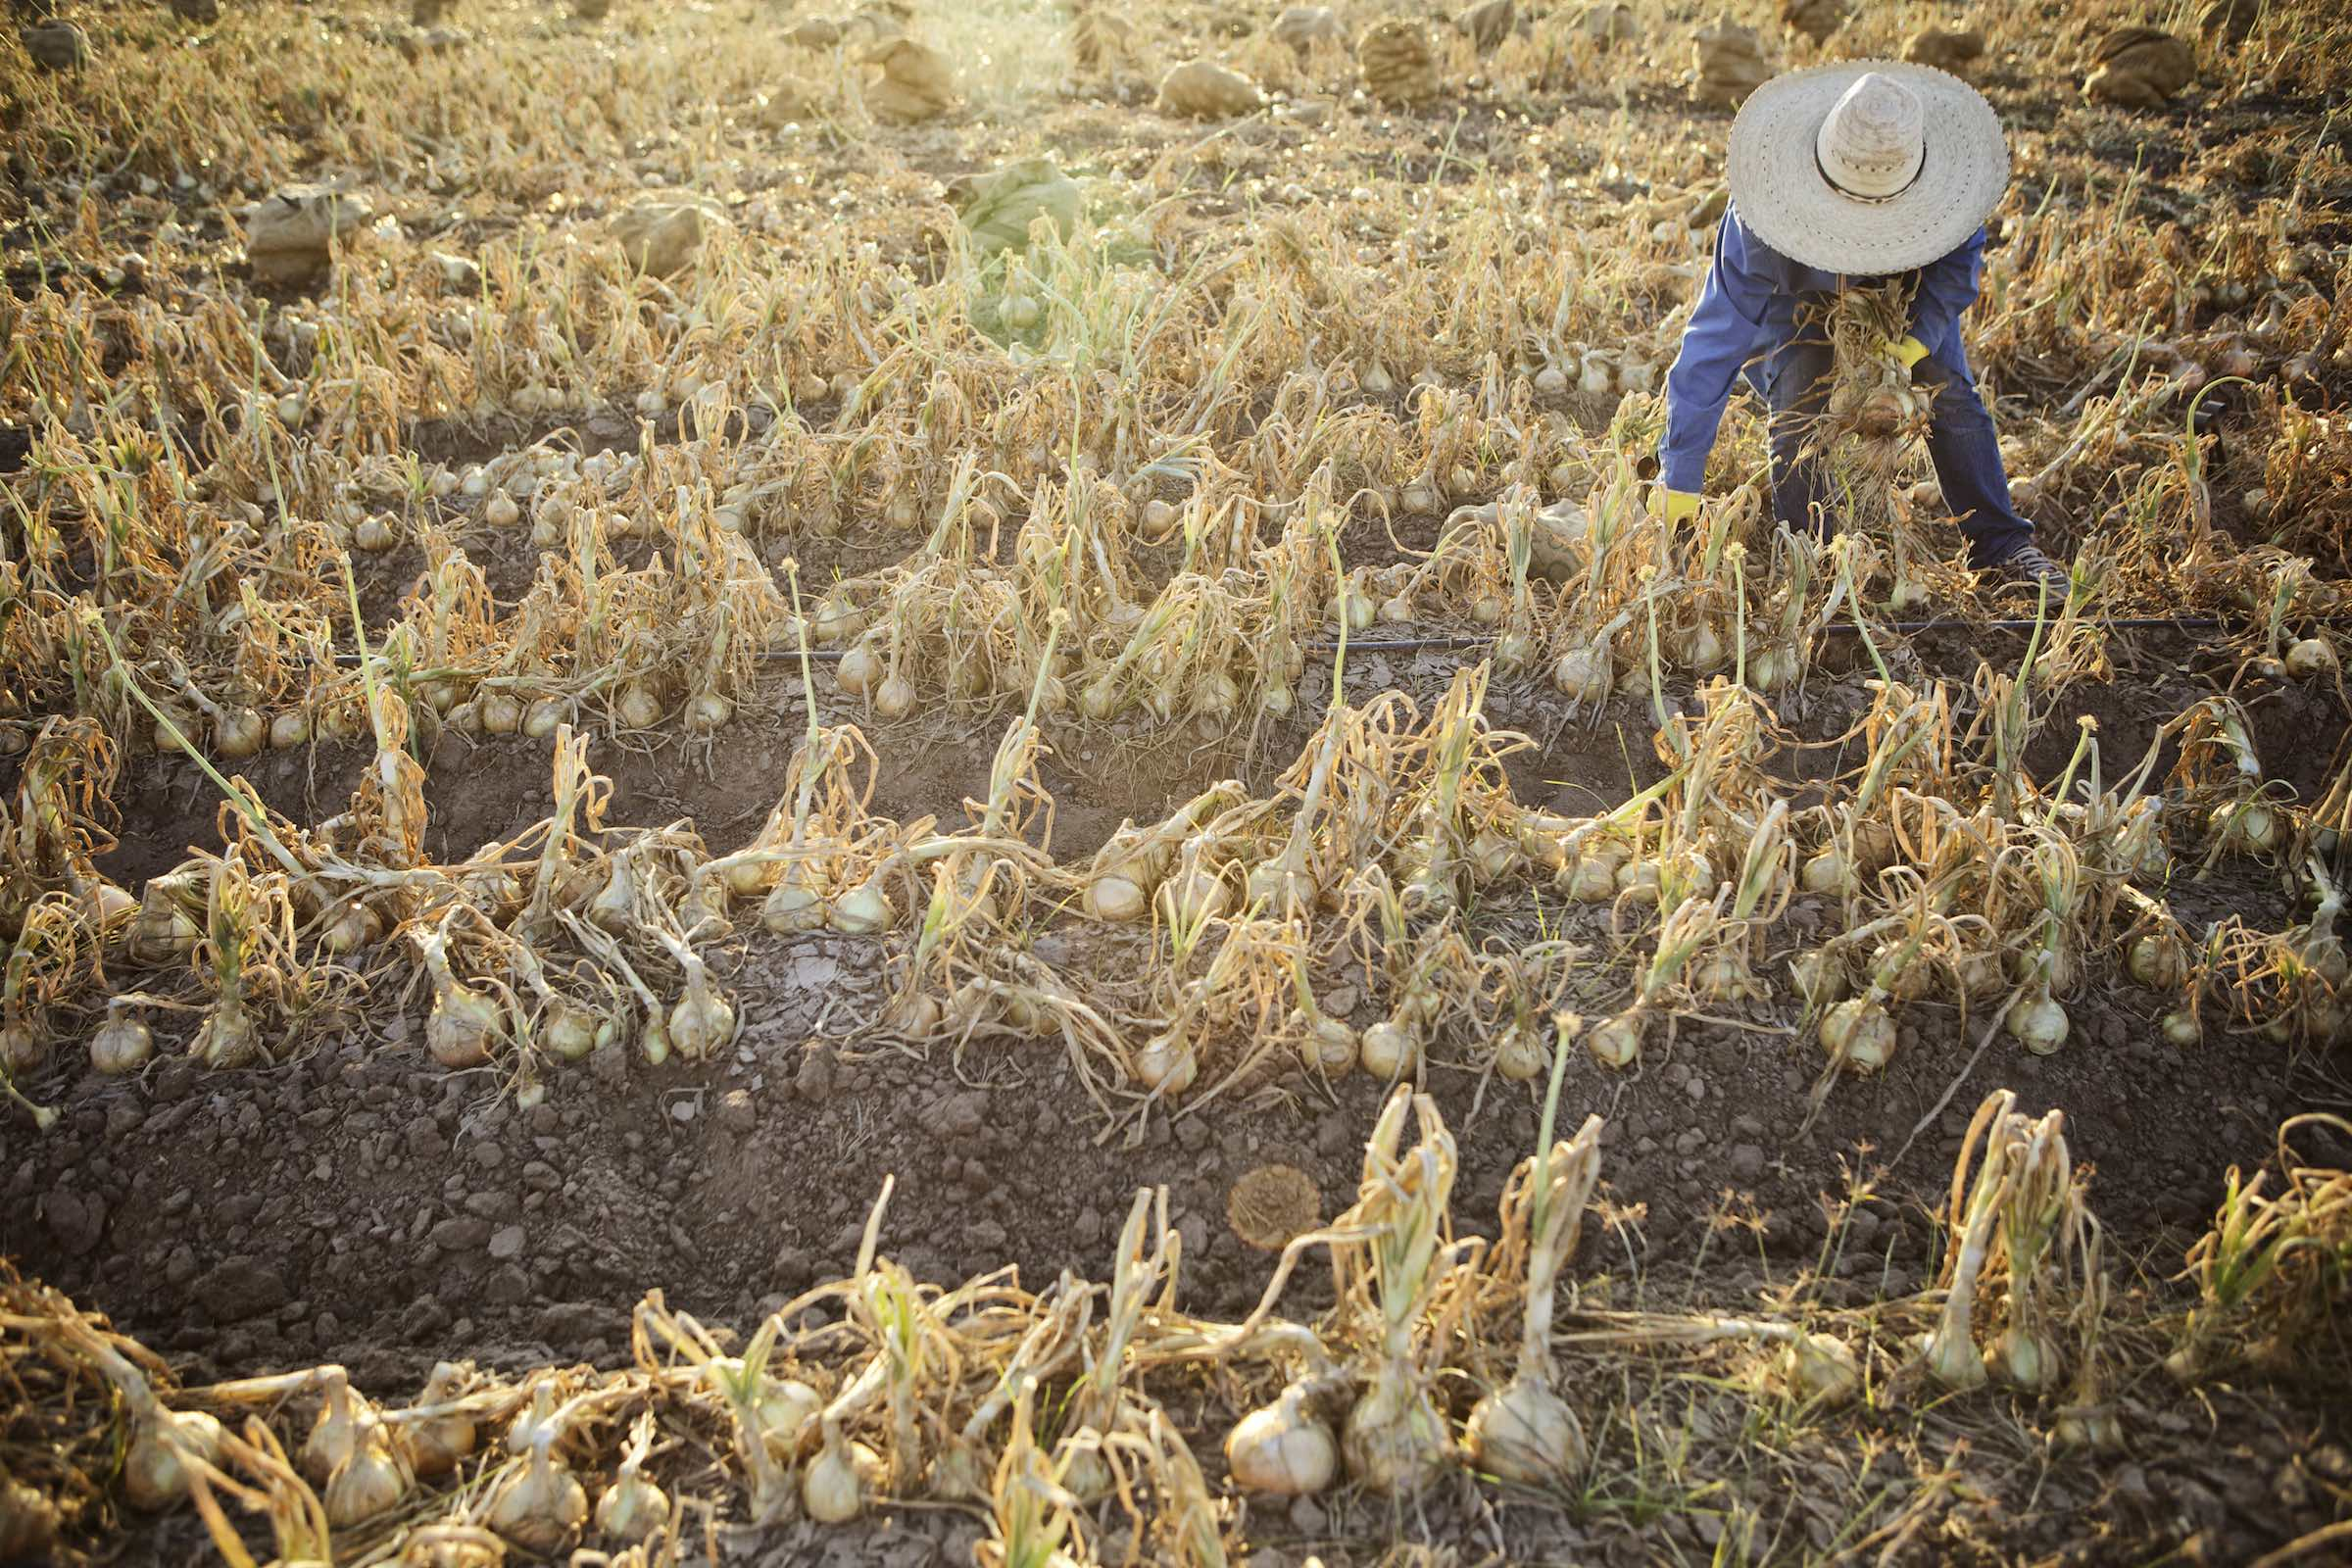 Jody Horton Photography - Farmer harvesting rows of onions.